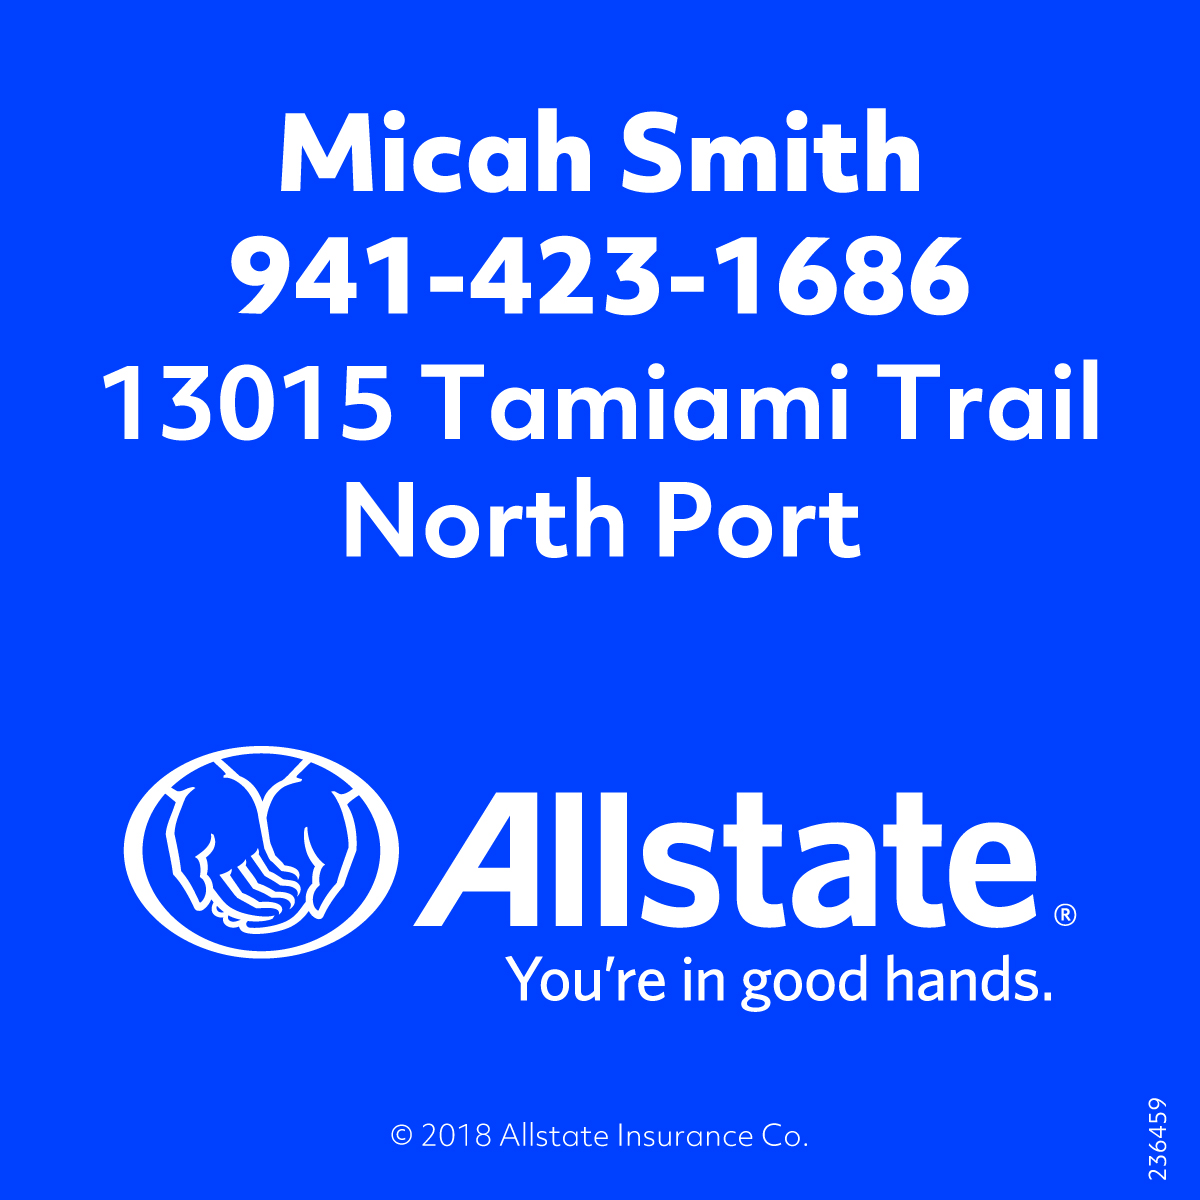 Allstate-Micah Smith